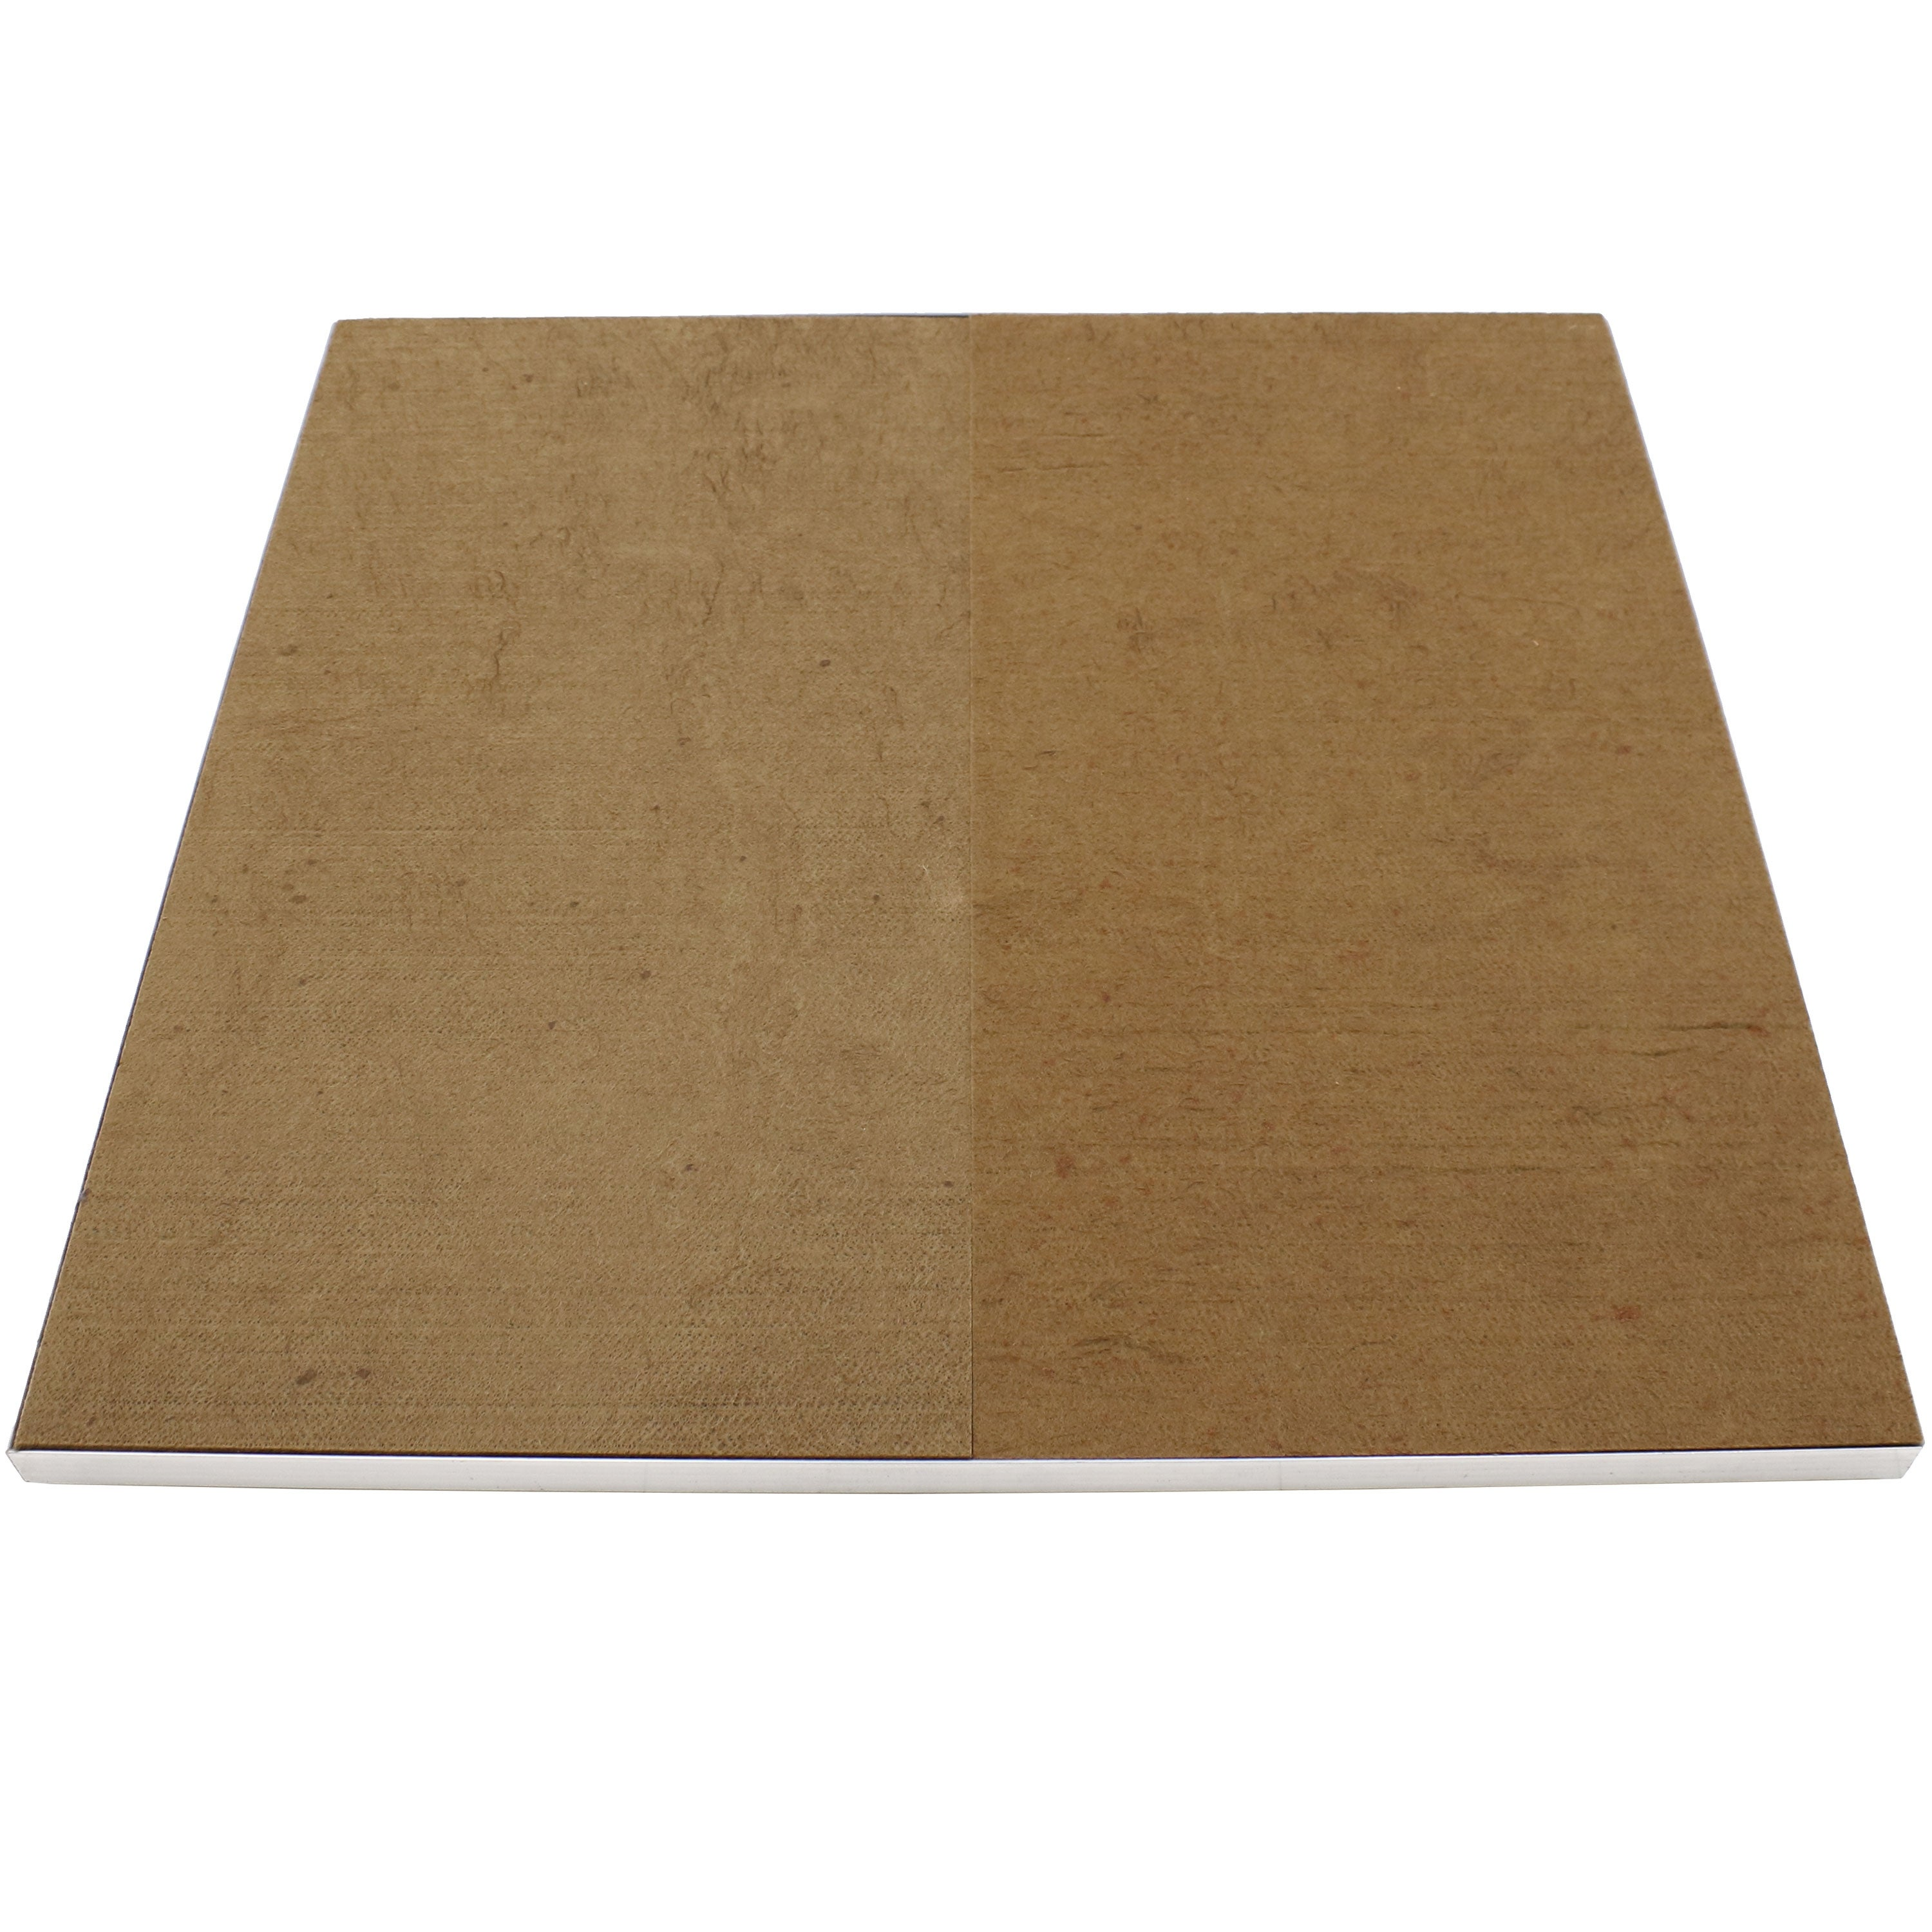 Image of: Shop Black Friday Deals On Deckprotect Fire Pit Pad 30 X 30 Mat Rack 30 X 30 Inch Overstock 29404431